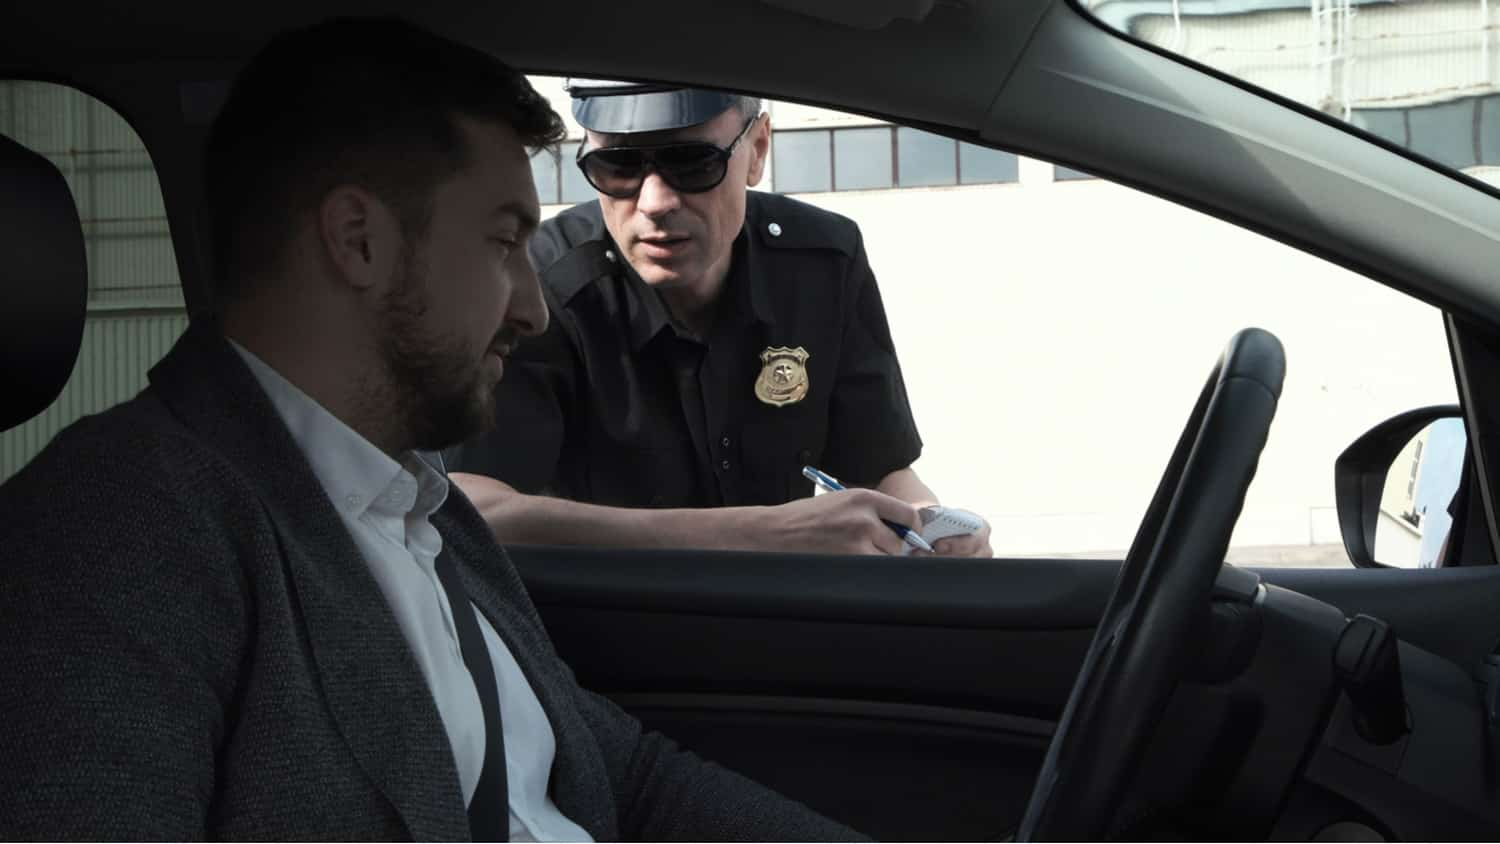 A man in a business suit talking to a police office. When can police search your car? Read our blog to find out